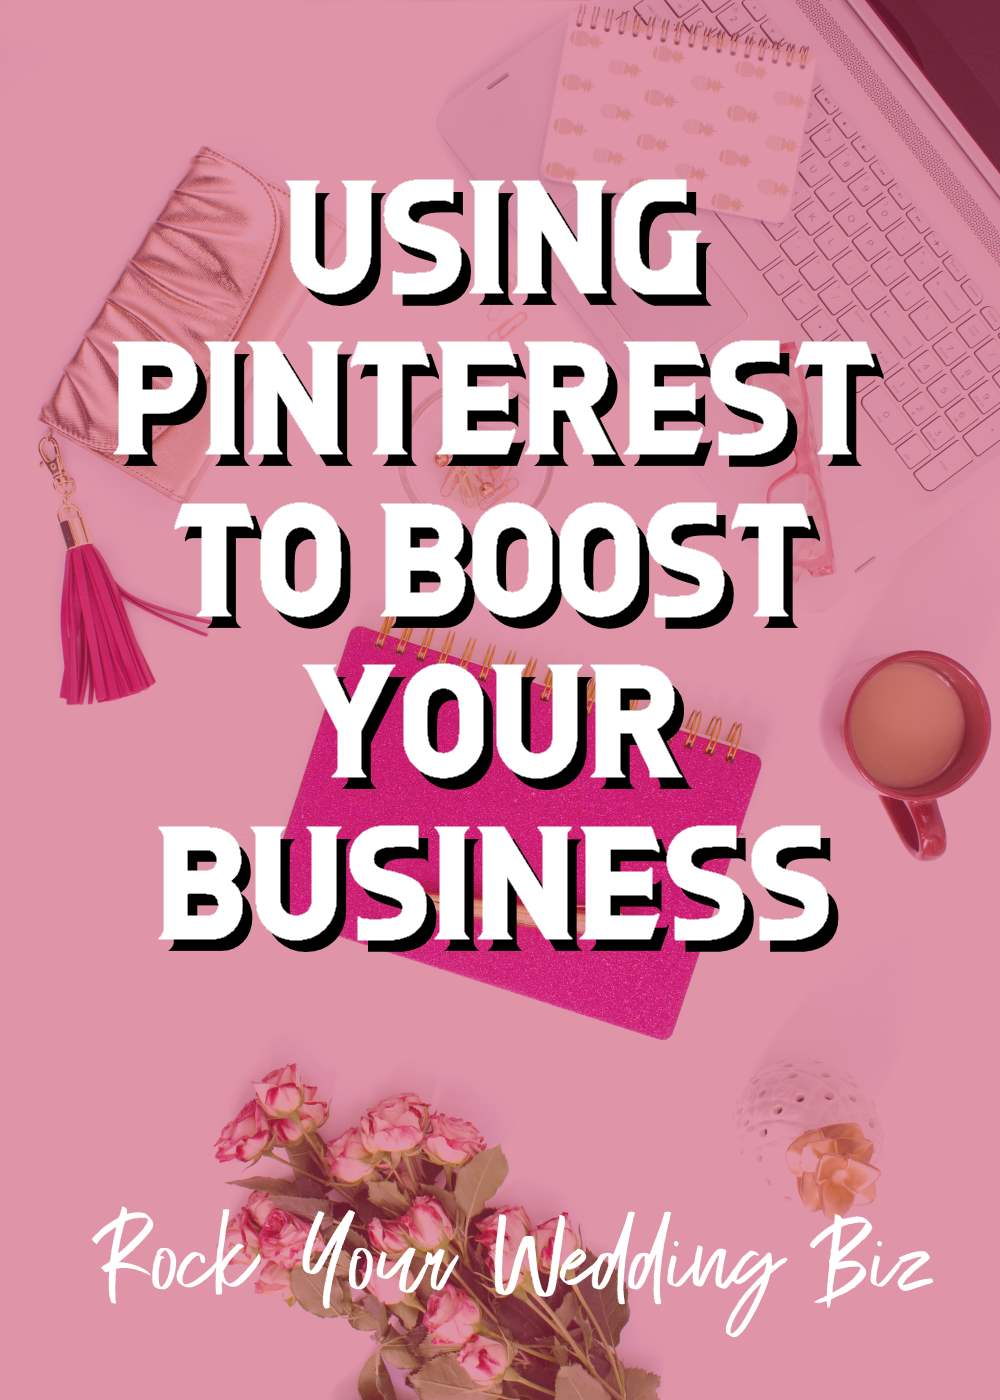 Episode 17 – Using Pinterest to Boost Your Business